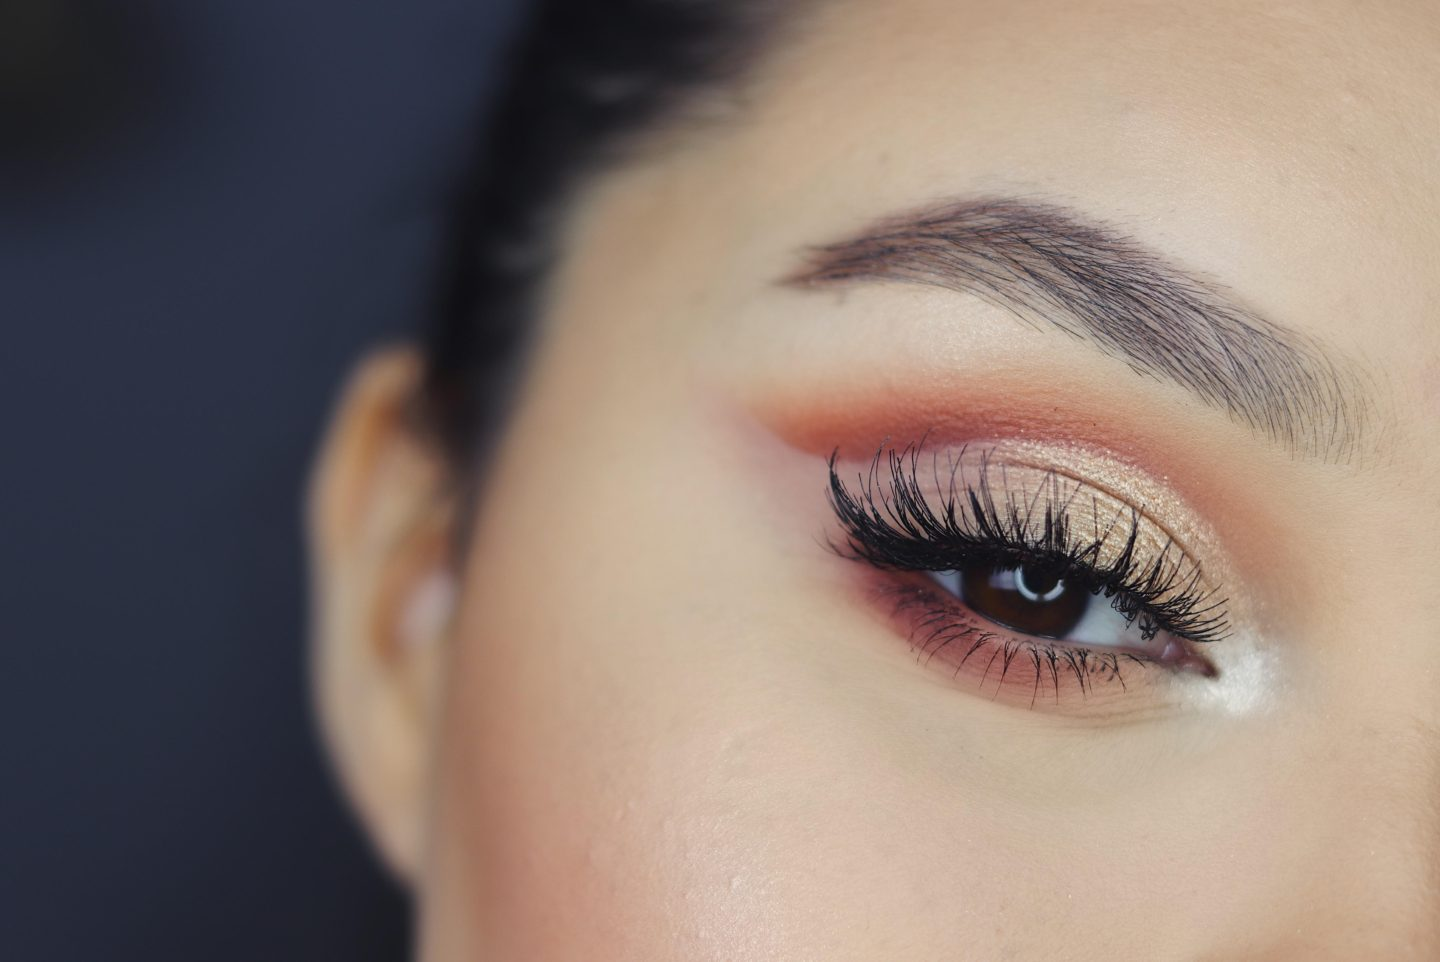 Tips on how to use a heated eyelash curler by Beauty After Forty